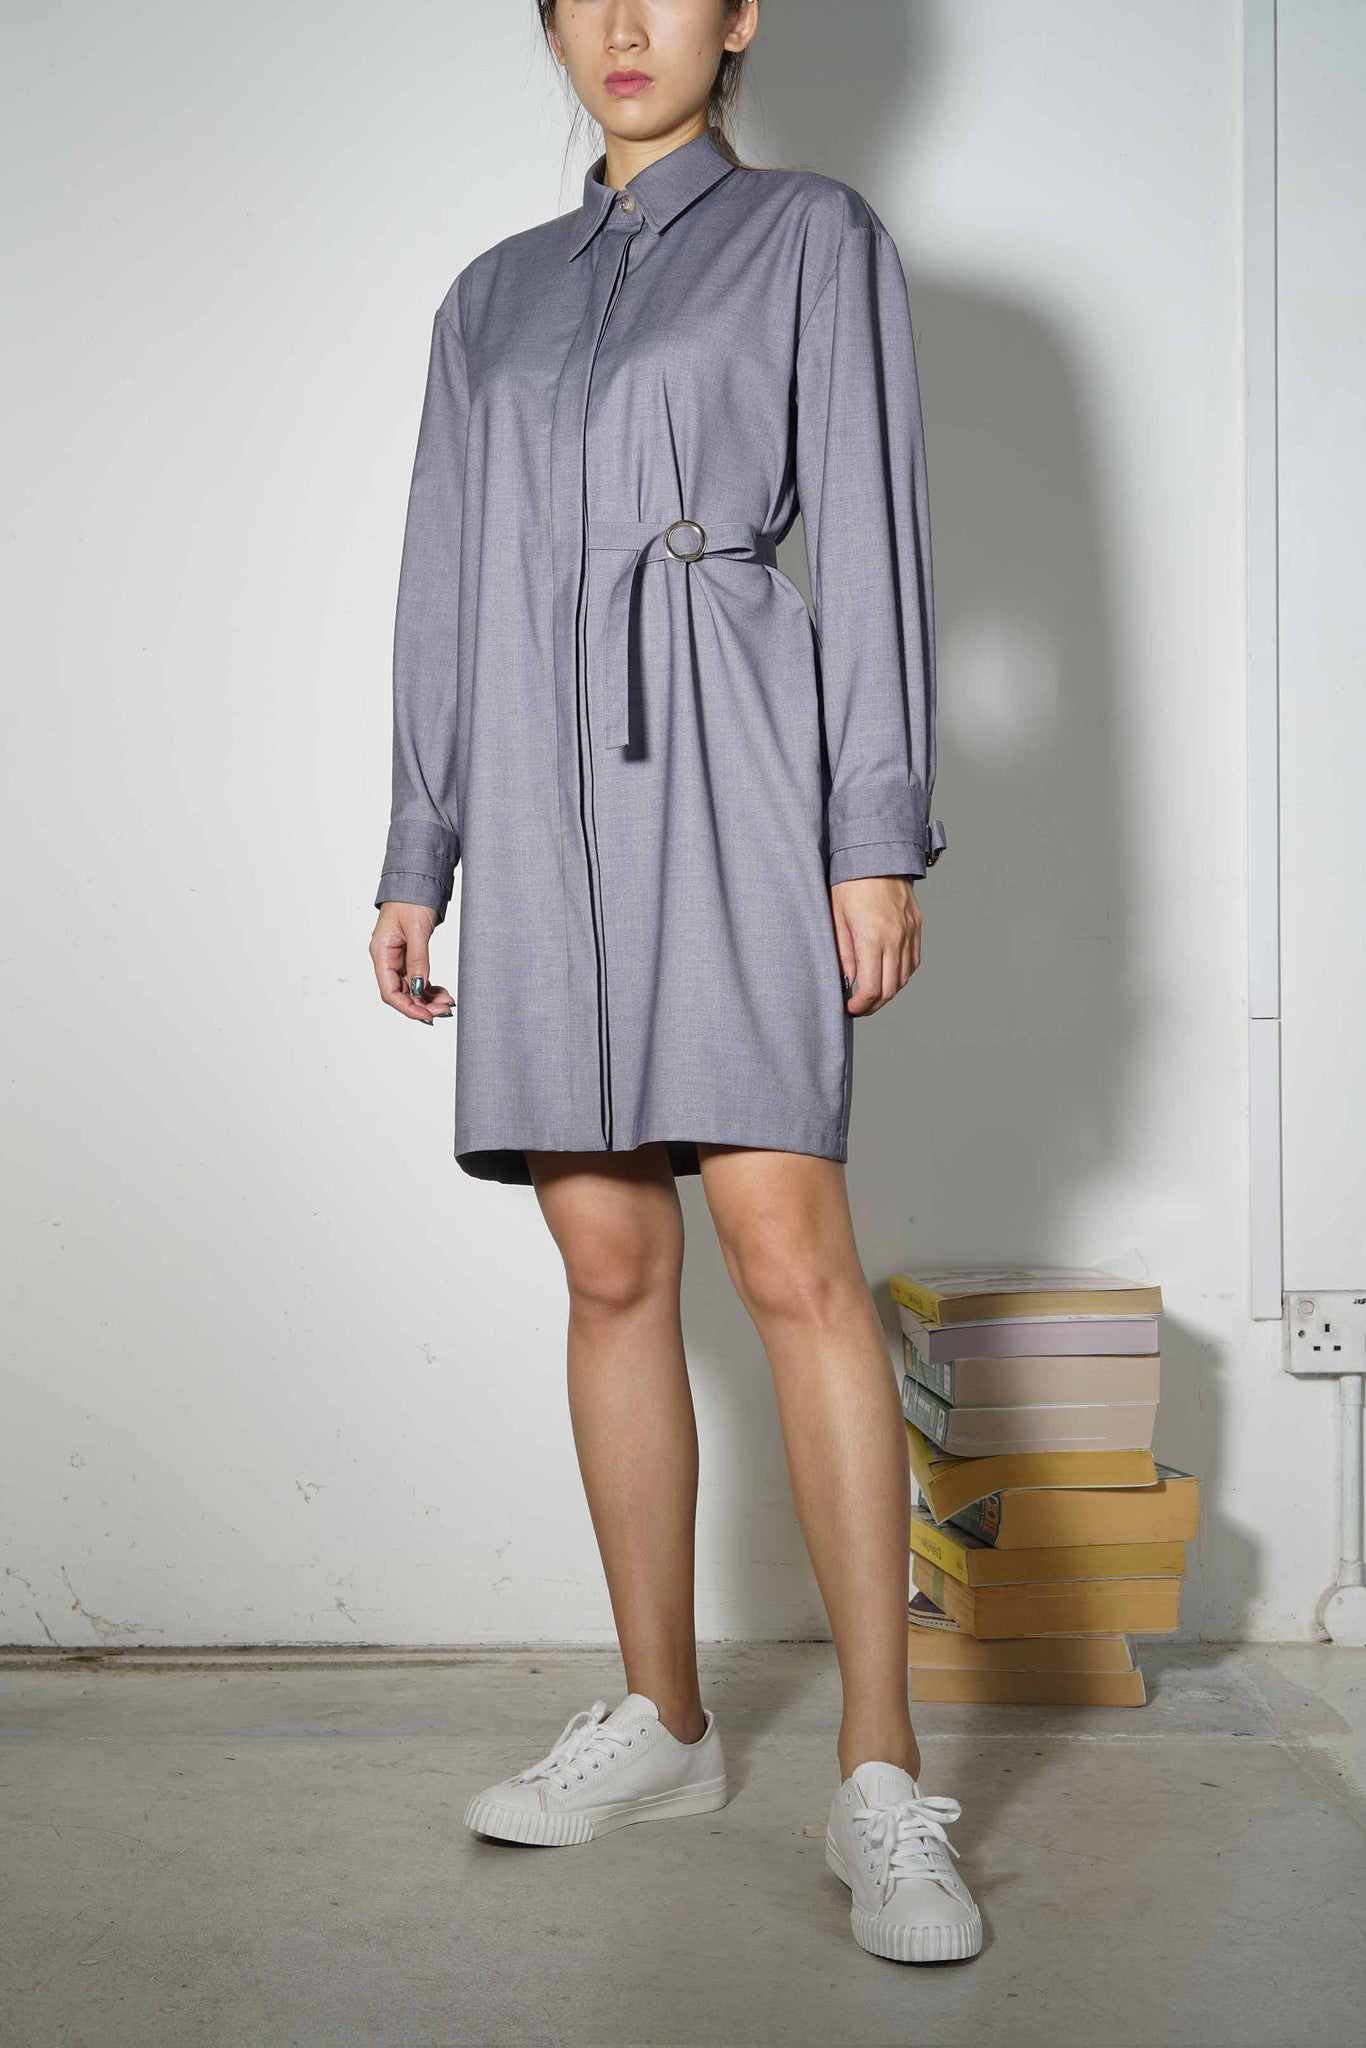 Plus-Minus Shirtdress #74 - Grey